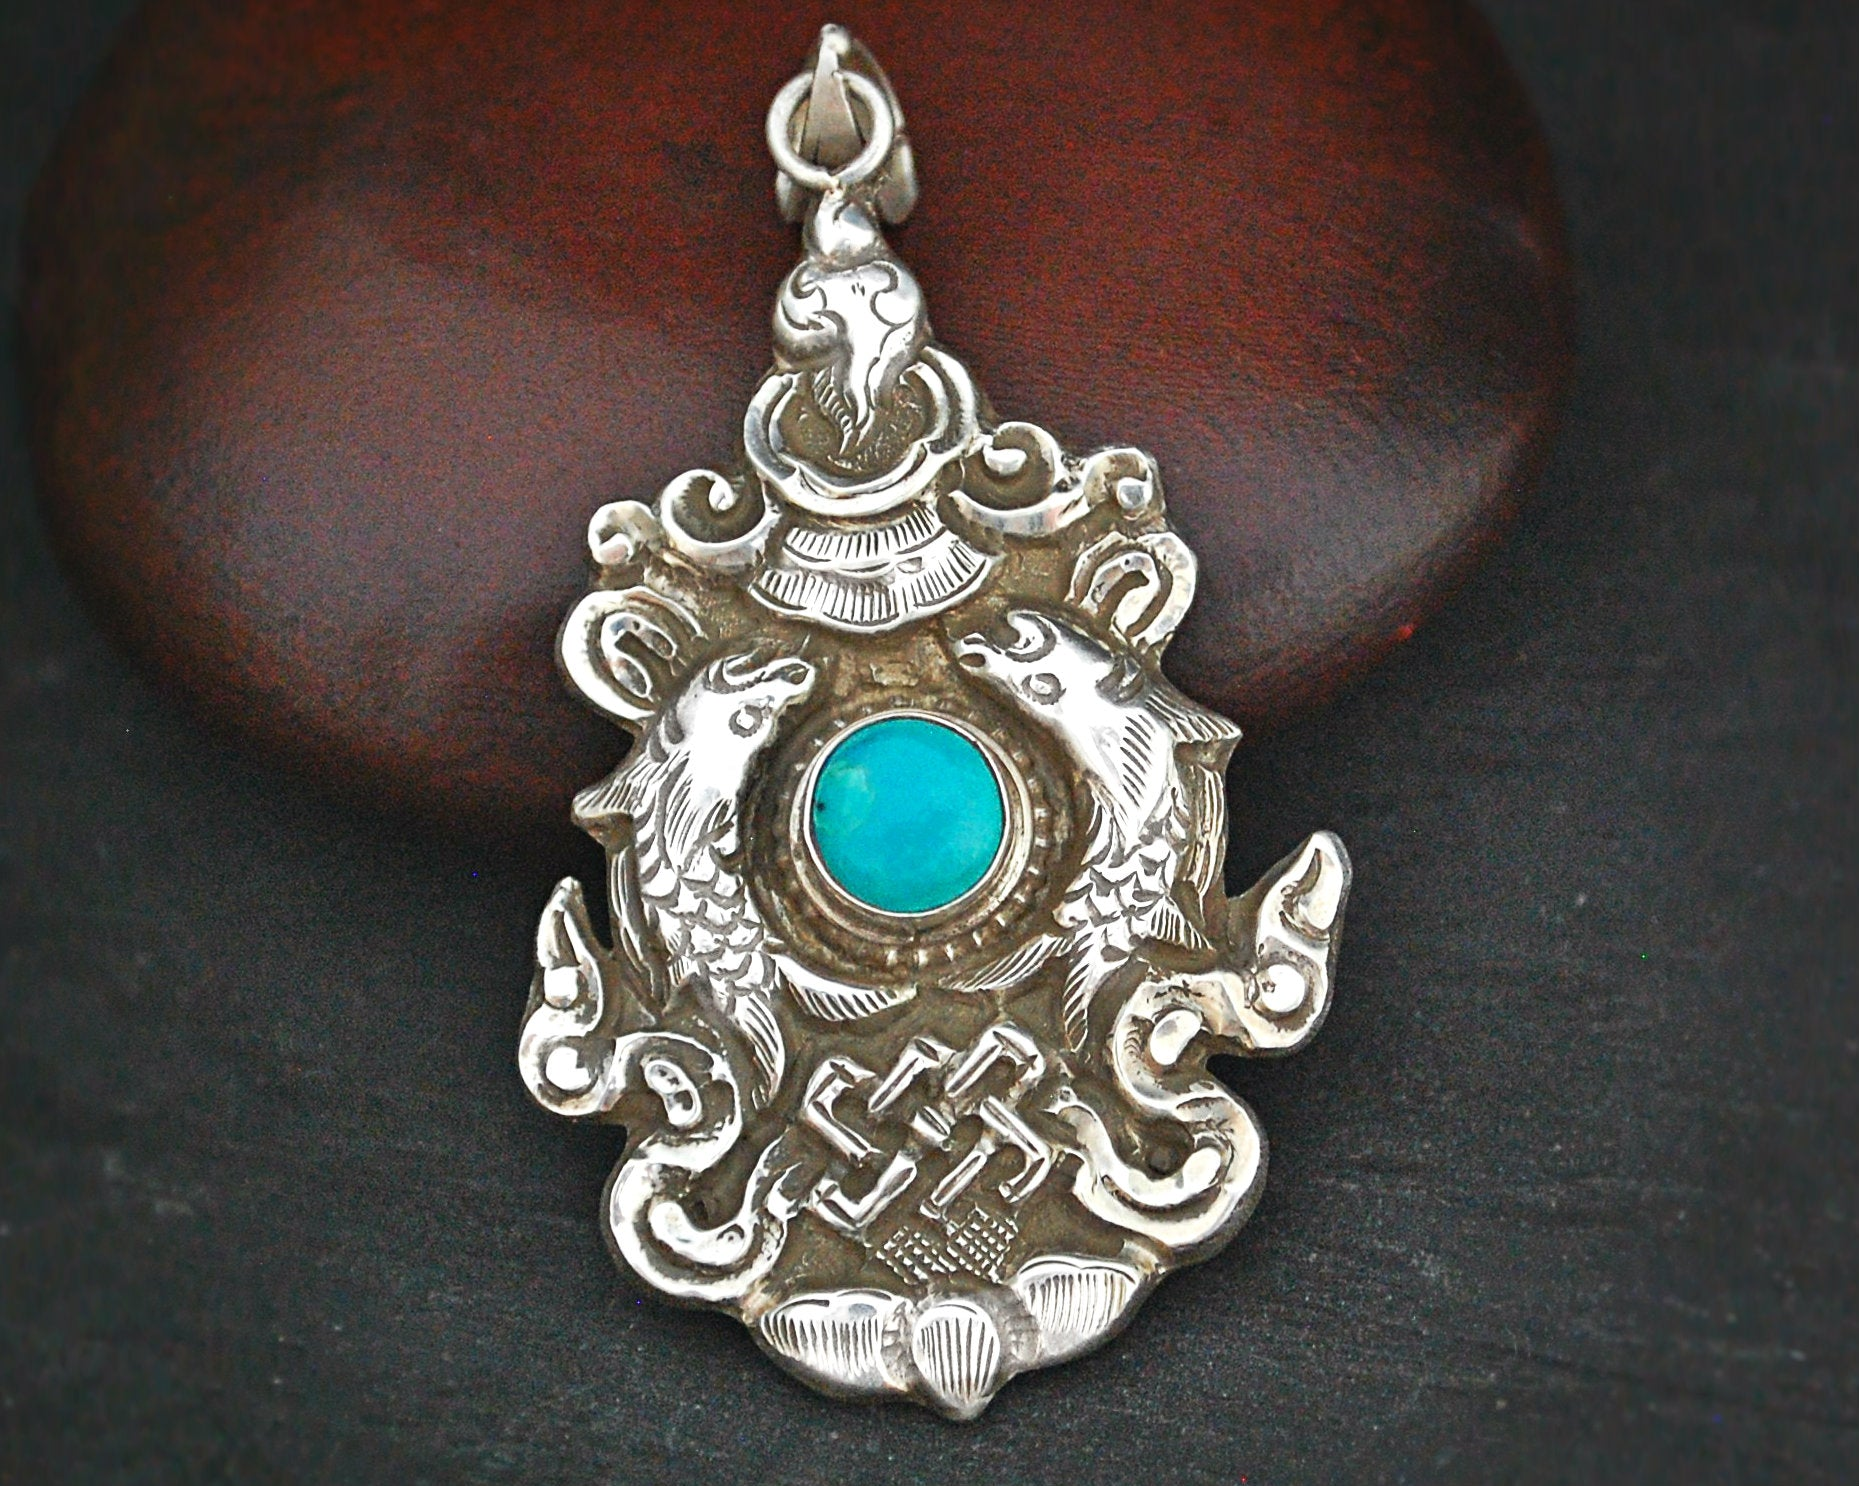 Nepali Turquoise Pendant with Fish, Conch Shell and Infinite Knot